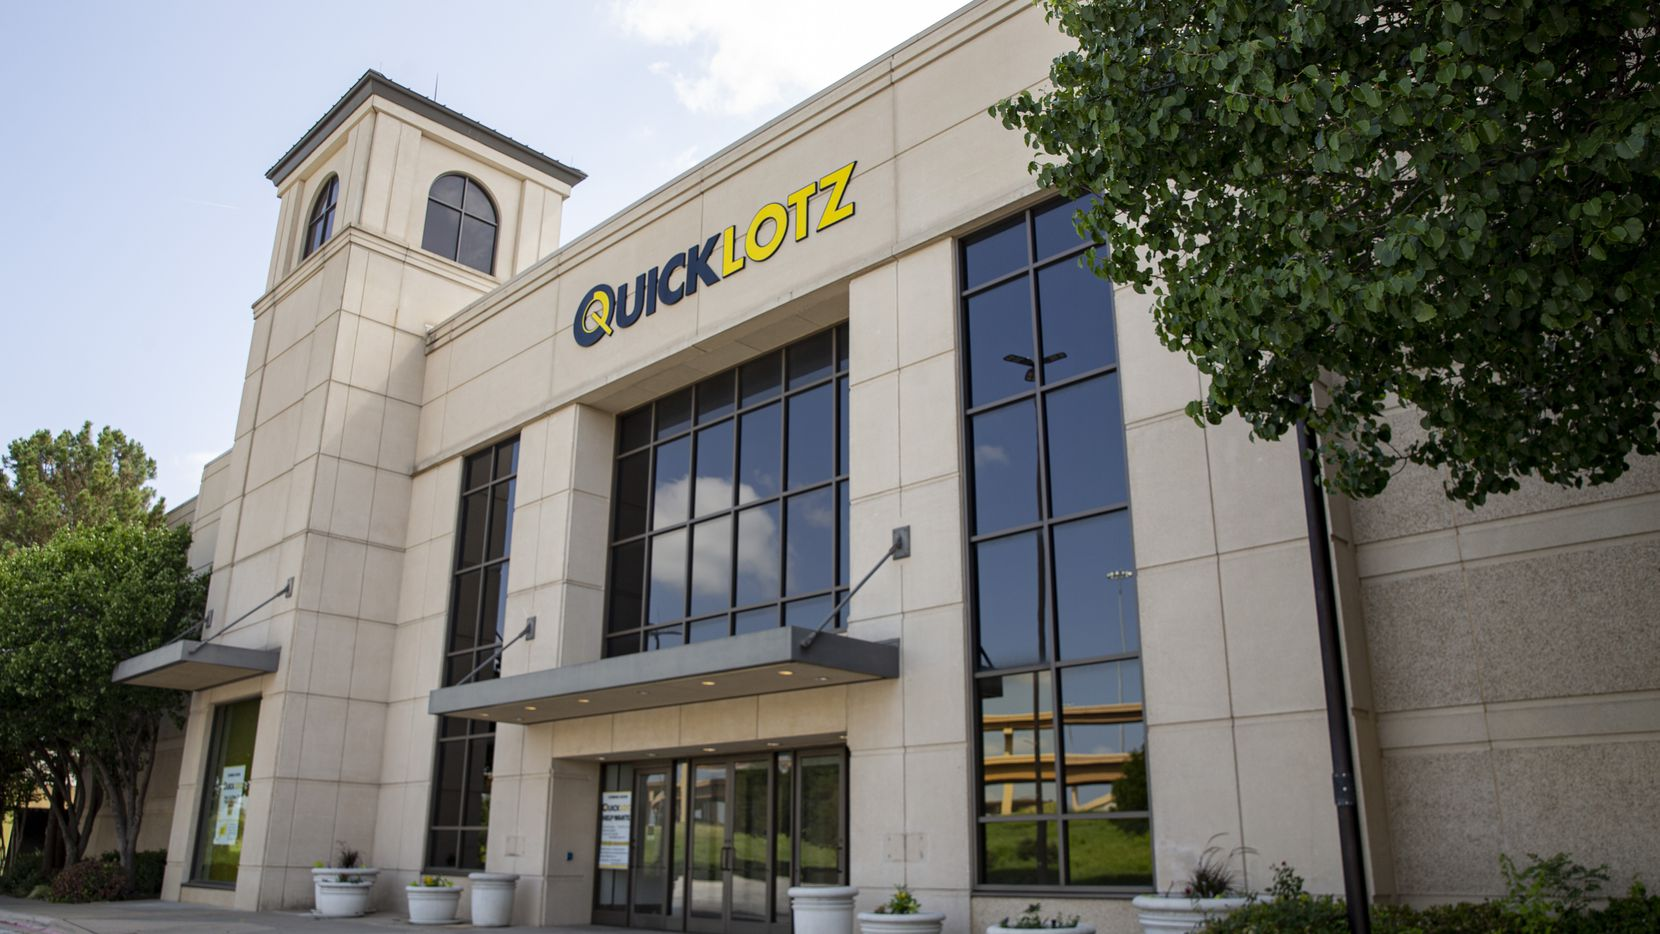 The exterior of Quicklotz located in the former Nordstrom store at North East Mall in Hurst. This is the exit. The store entrance is on the mall side.